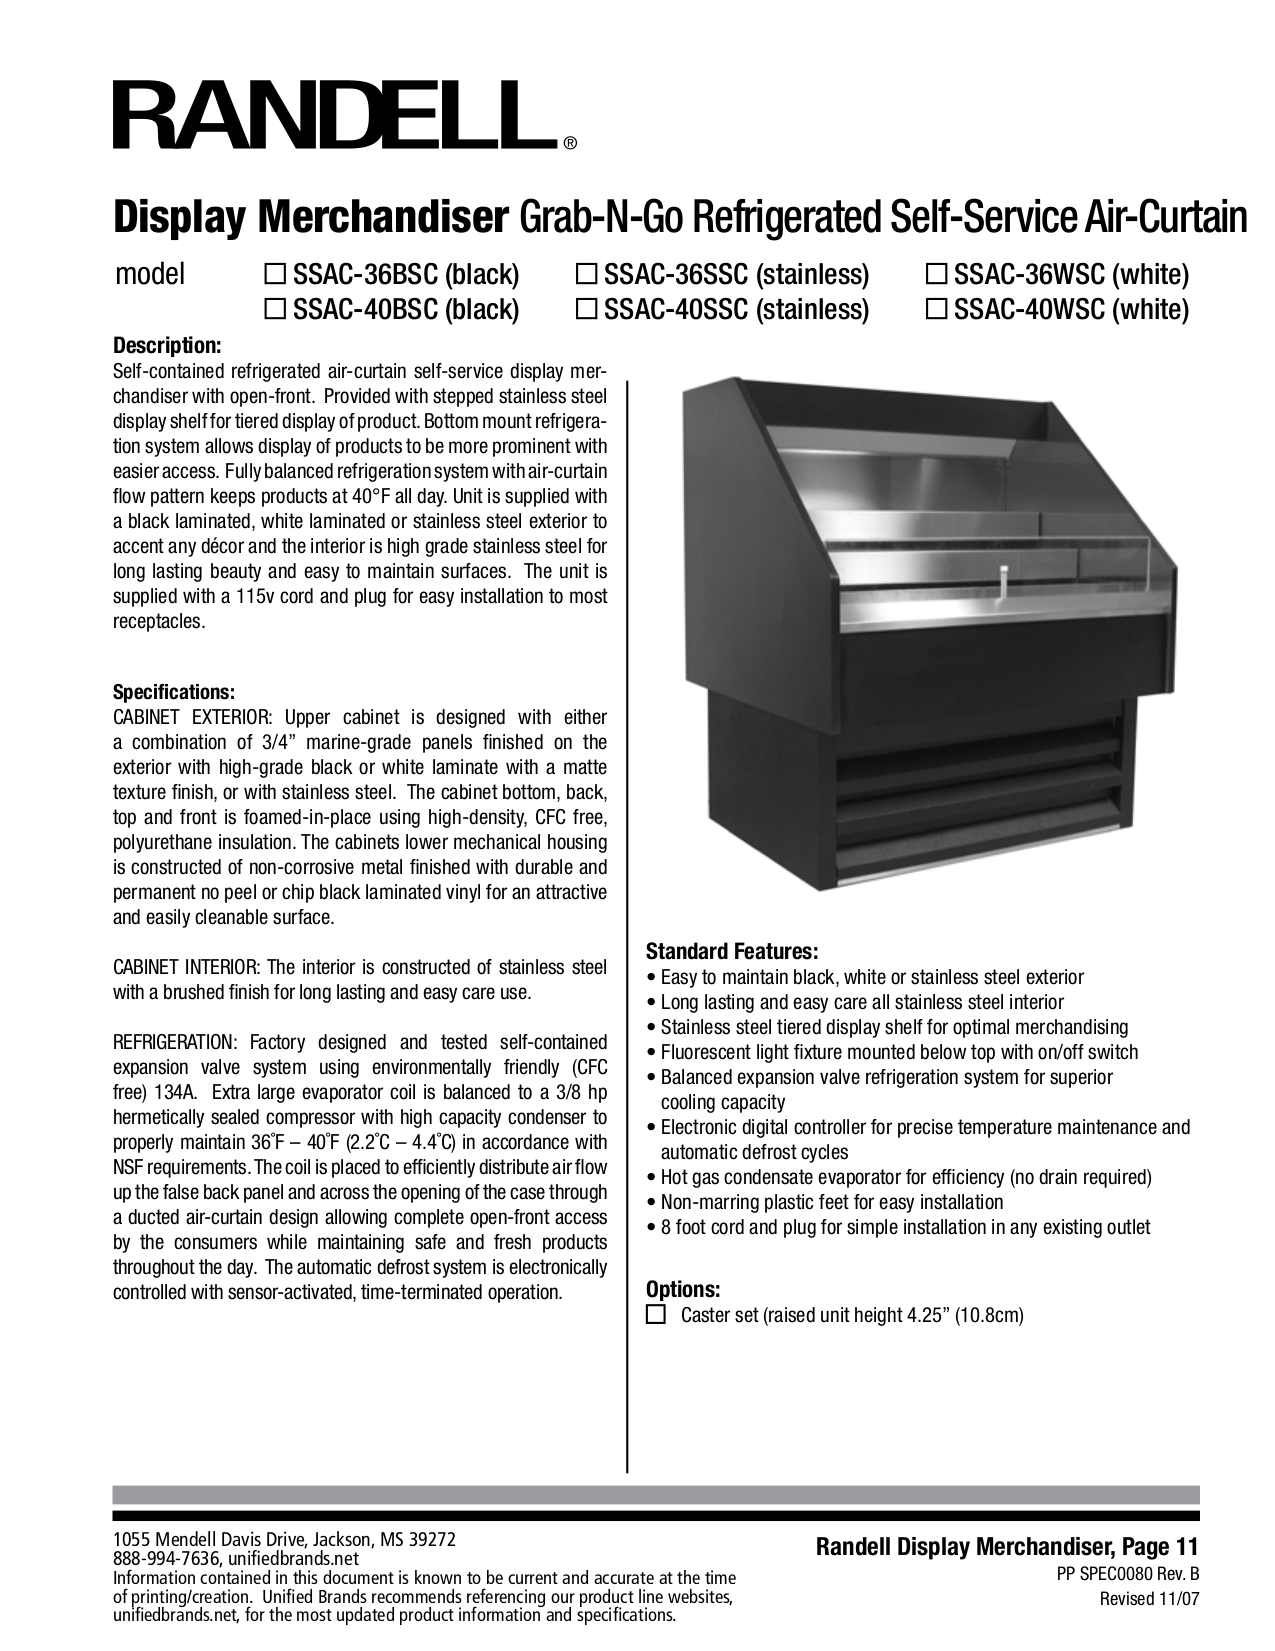 pdf for Randell Other SSAC-40BSC Merchandisers manual